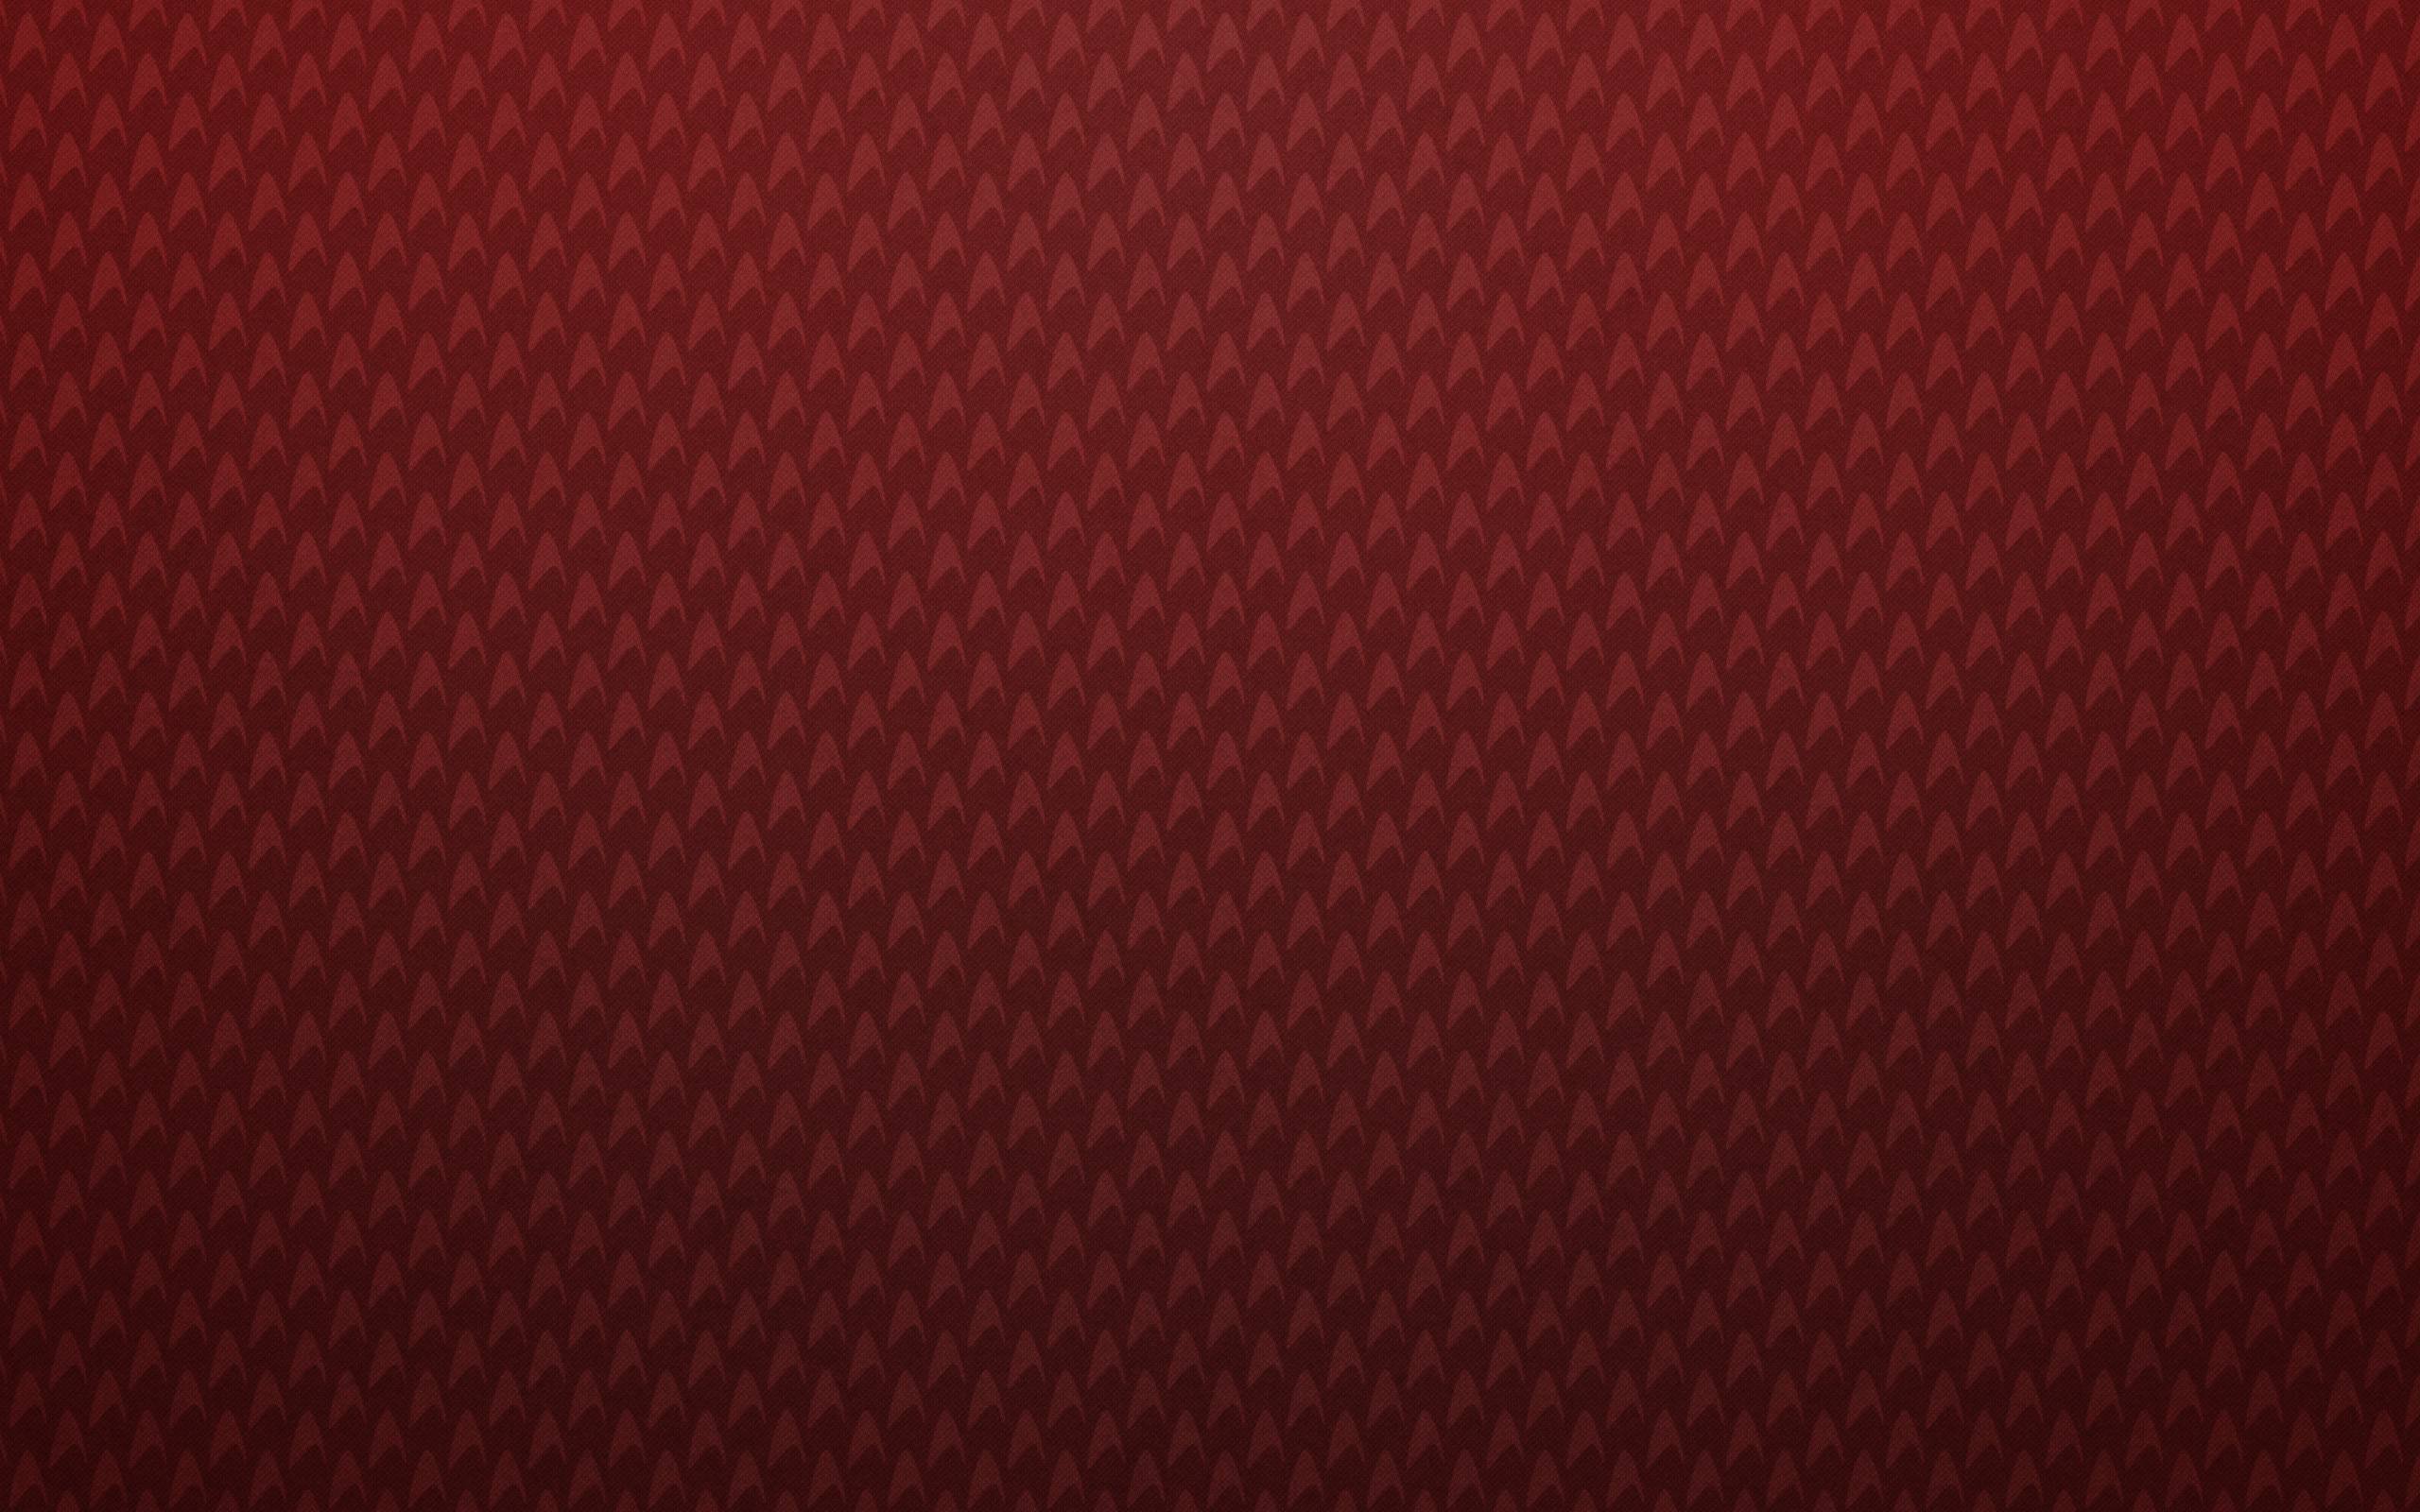 Red leather texture wallpaper wallpaper color